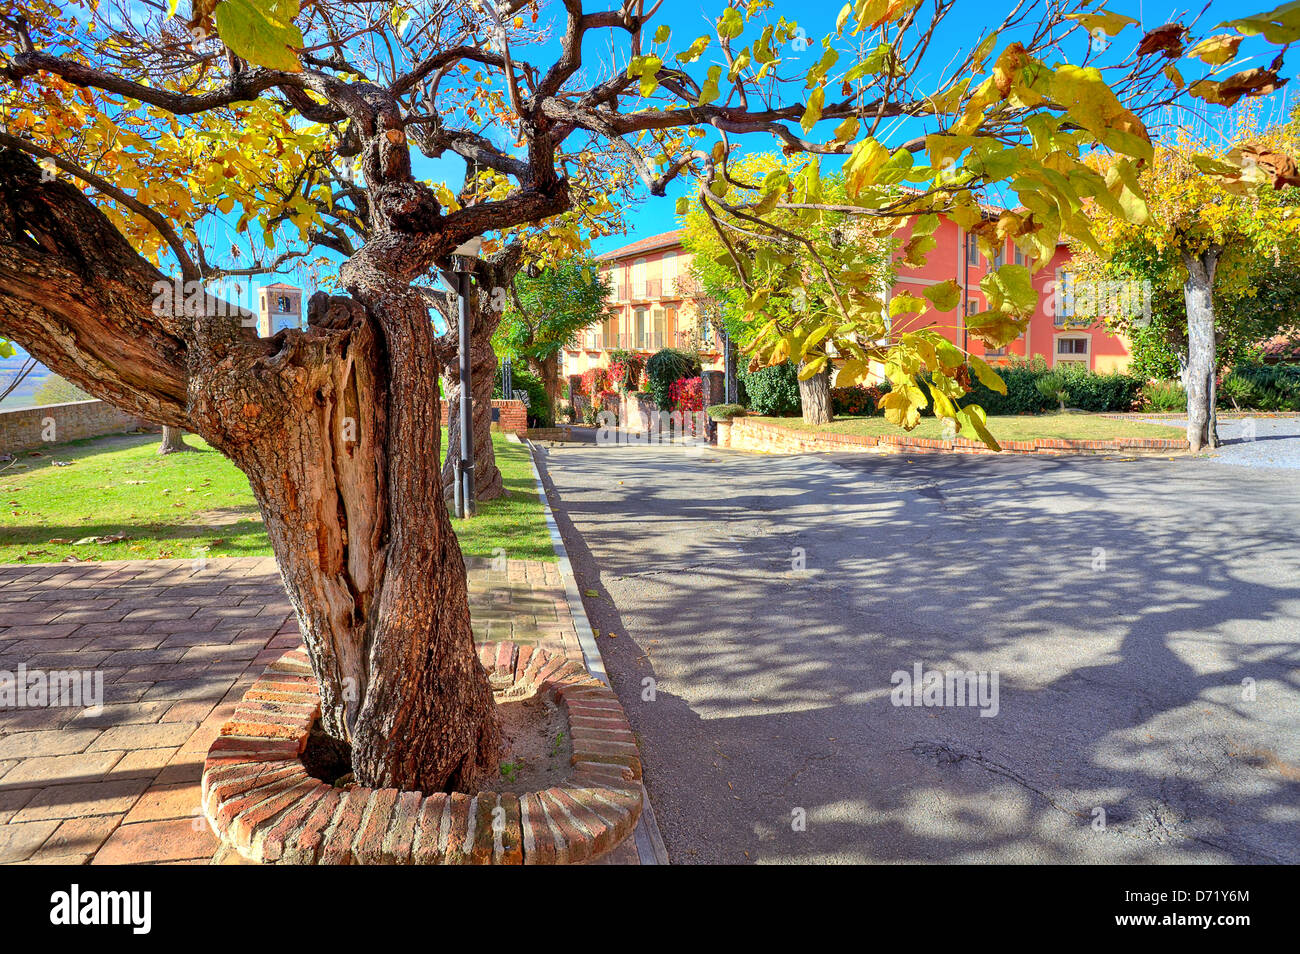 Tree with yellow and green leaves and old trunk grows in the street in small town of Santa Vittoria D'Alba in - Stock Image